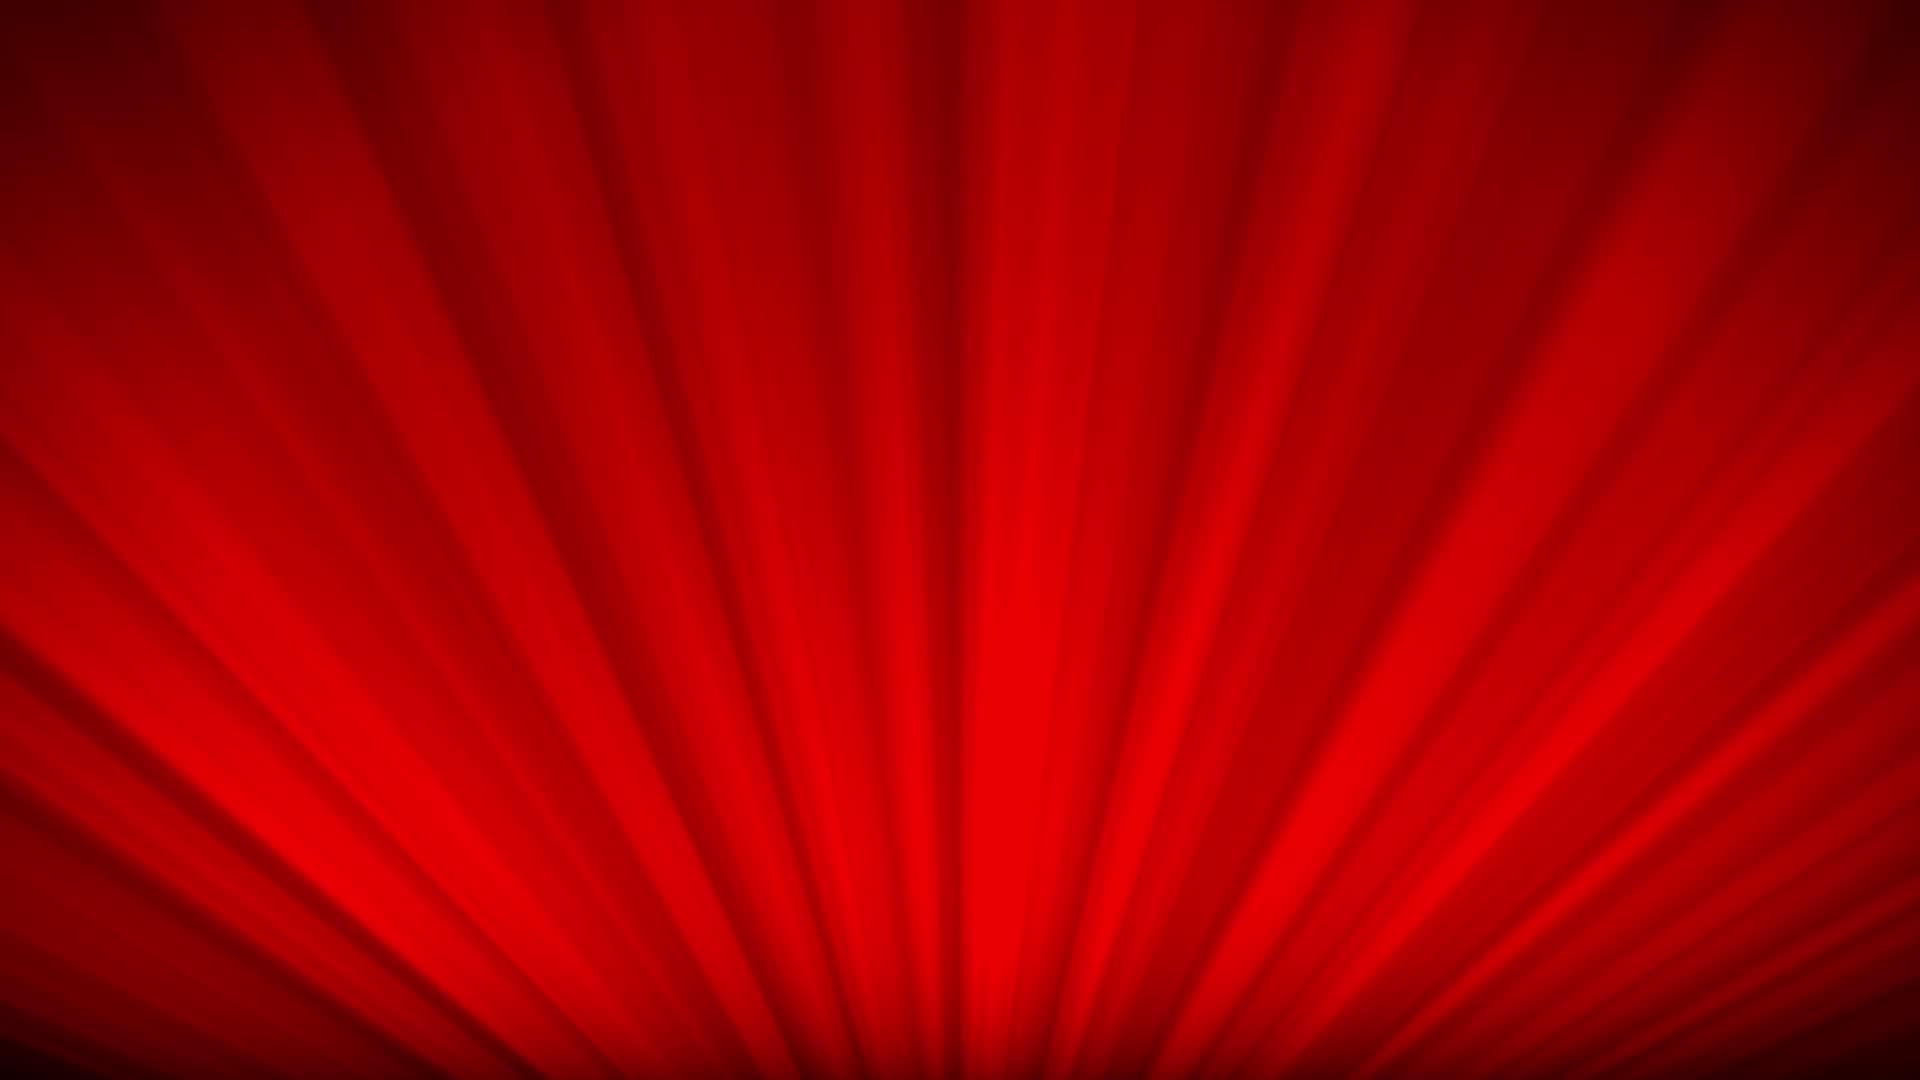 Abstract Background Red Hd Desktop Wallpapers Amagicocom